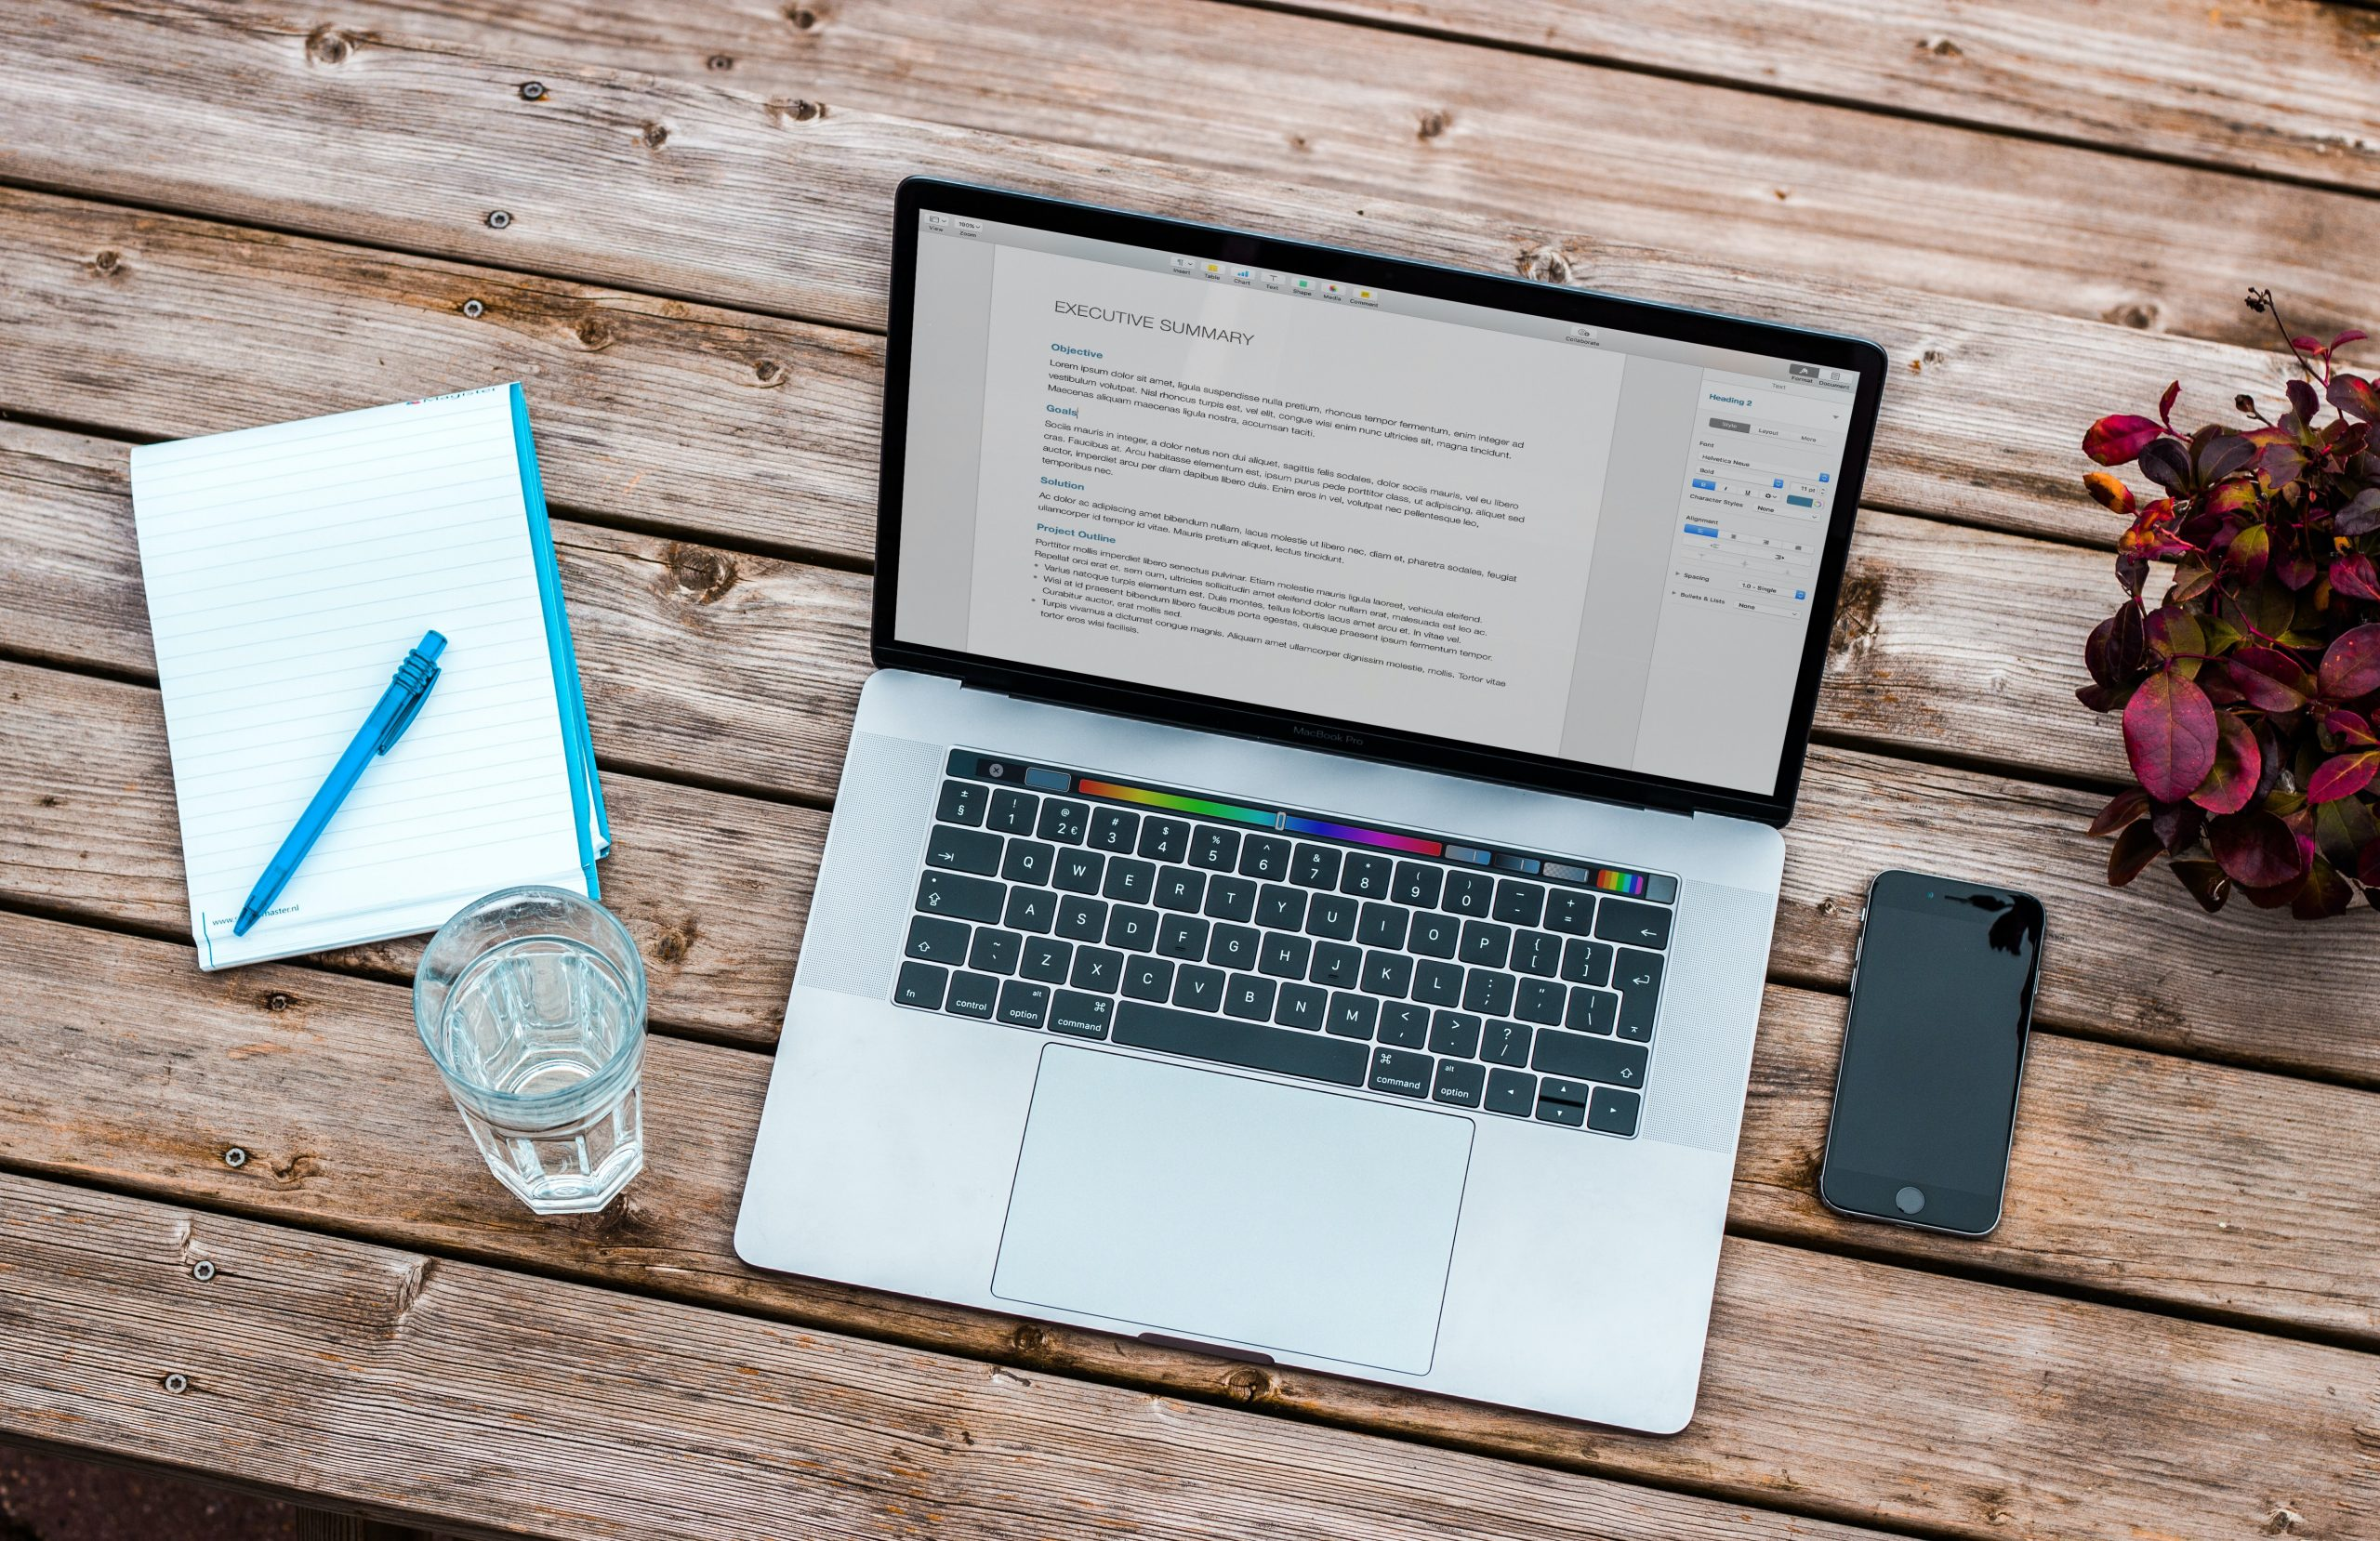 A top down view of a laptop on a table with a phone, glass of water and notebook beside it.